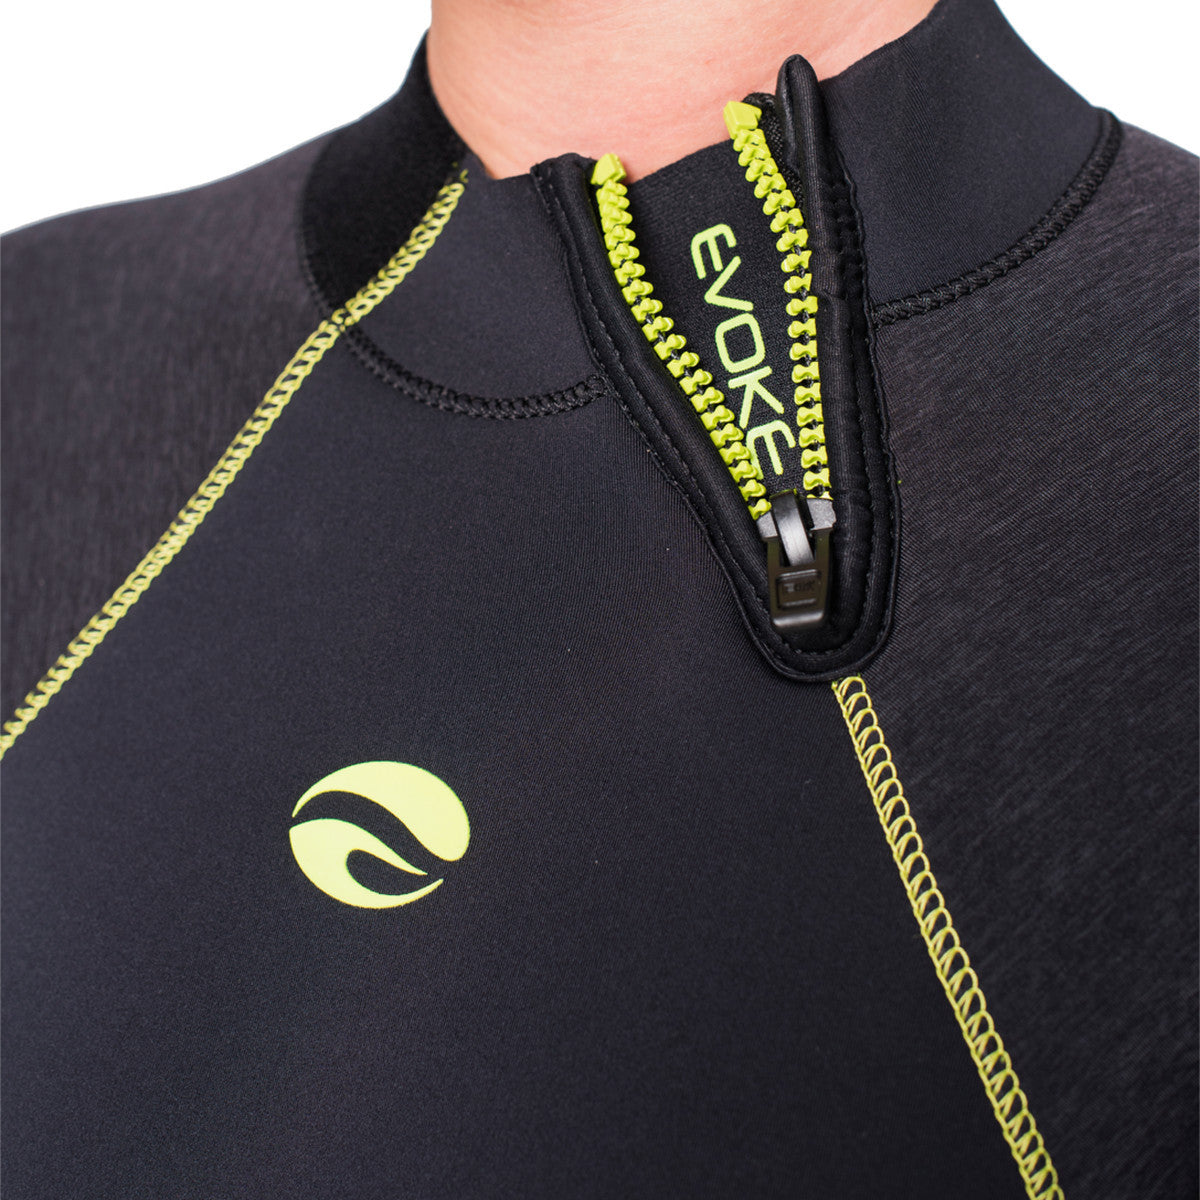 Bare Evoke 7mm Wetsuit: Womens - Oyster Diving Shop - 3